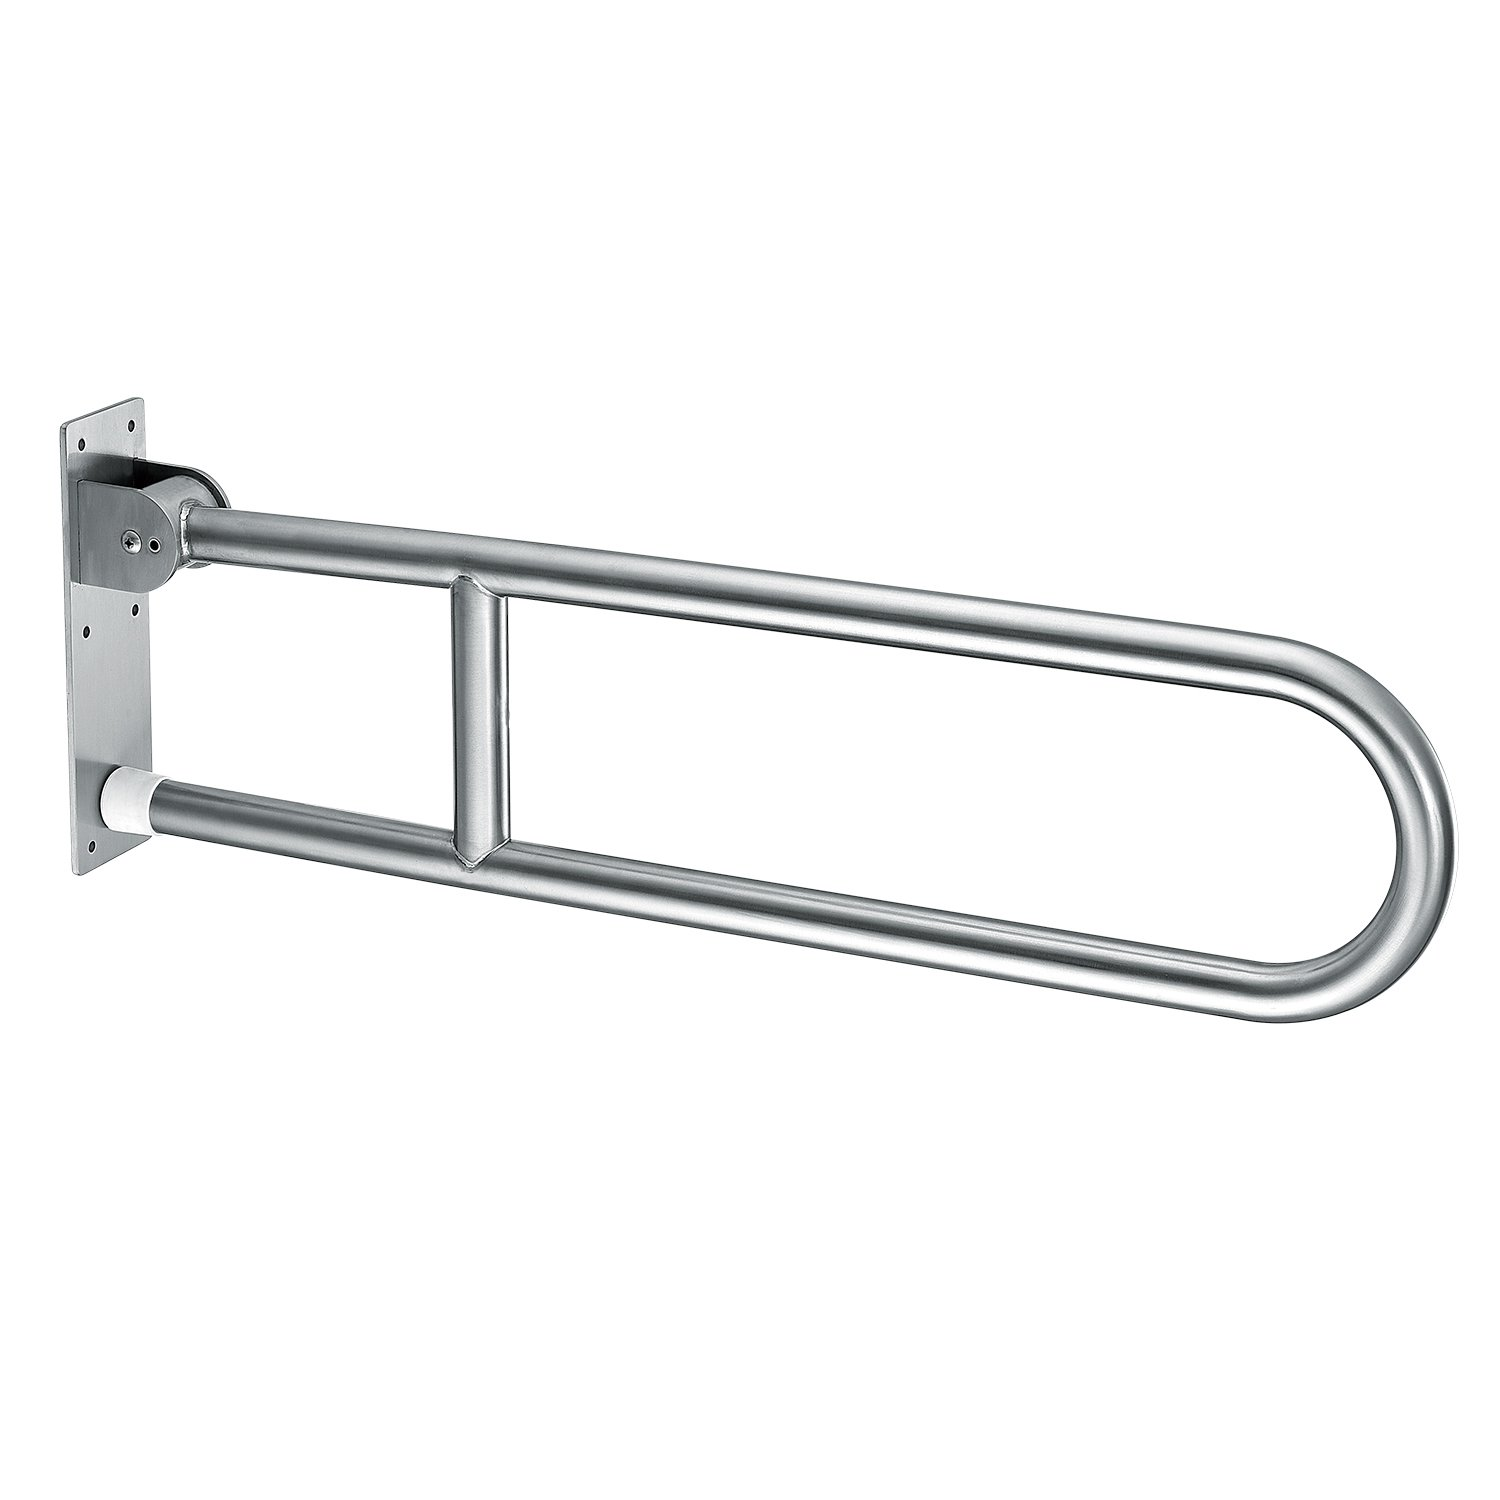 Dreamsbaku Toilet Grab Bar safety Rail Flip-up Bathroon safety handrail support Stainless Steel 30 inch